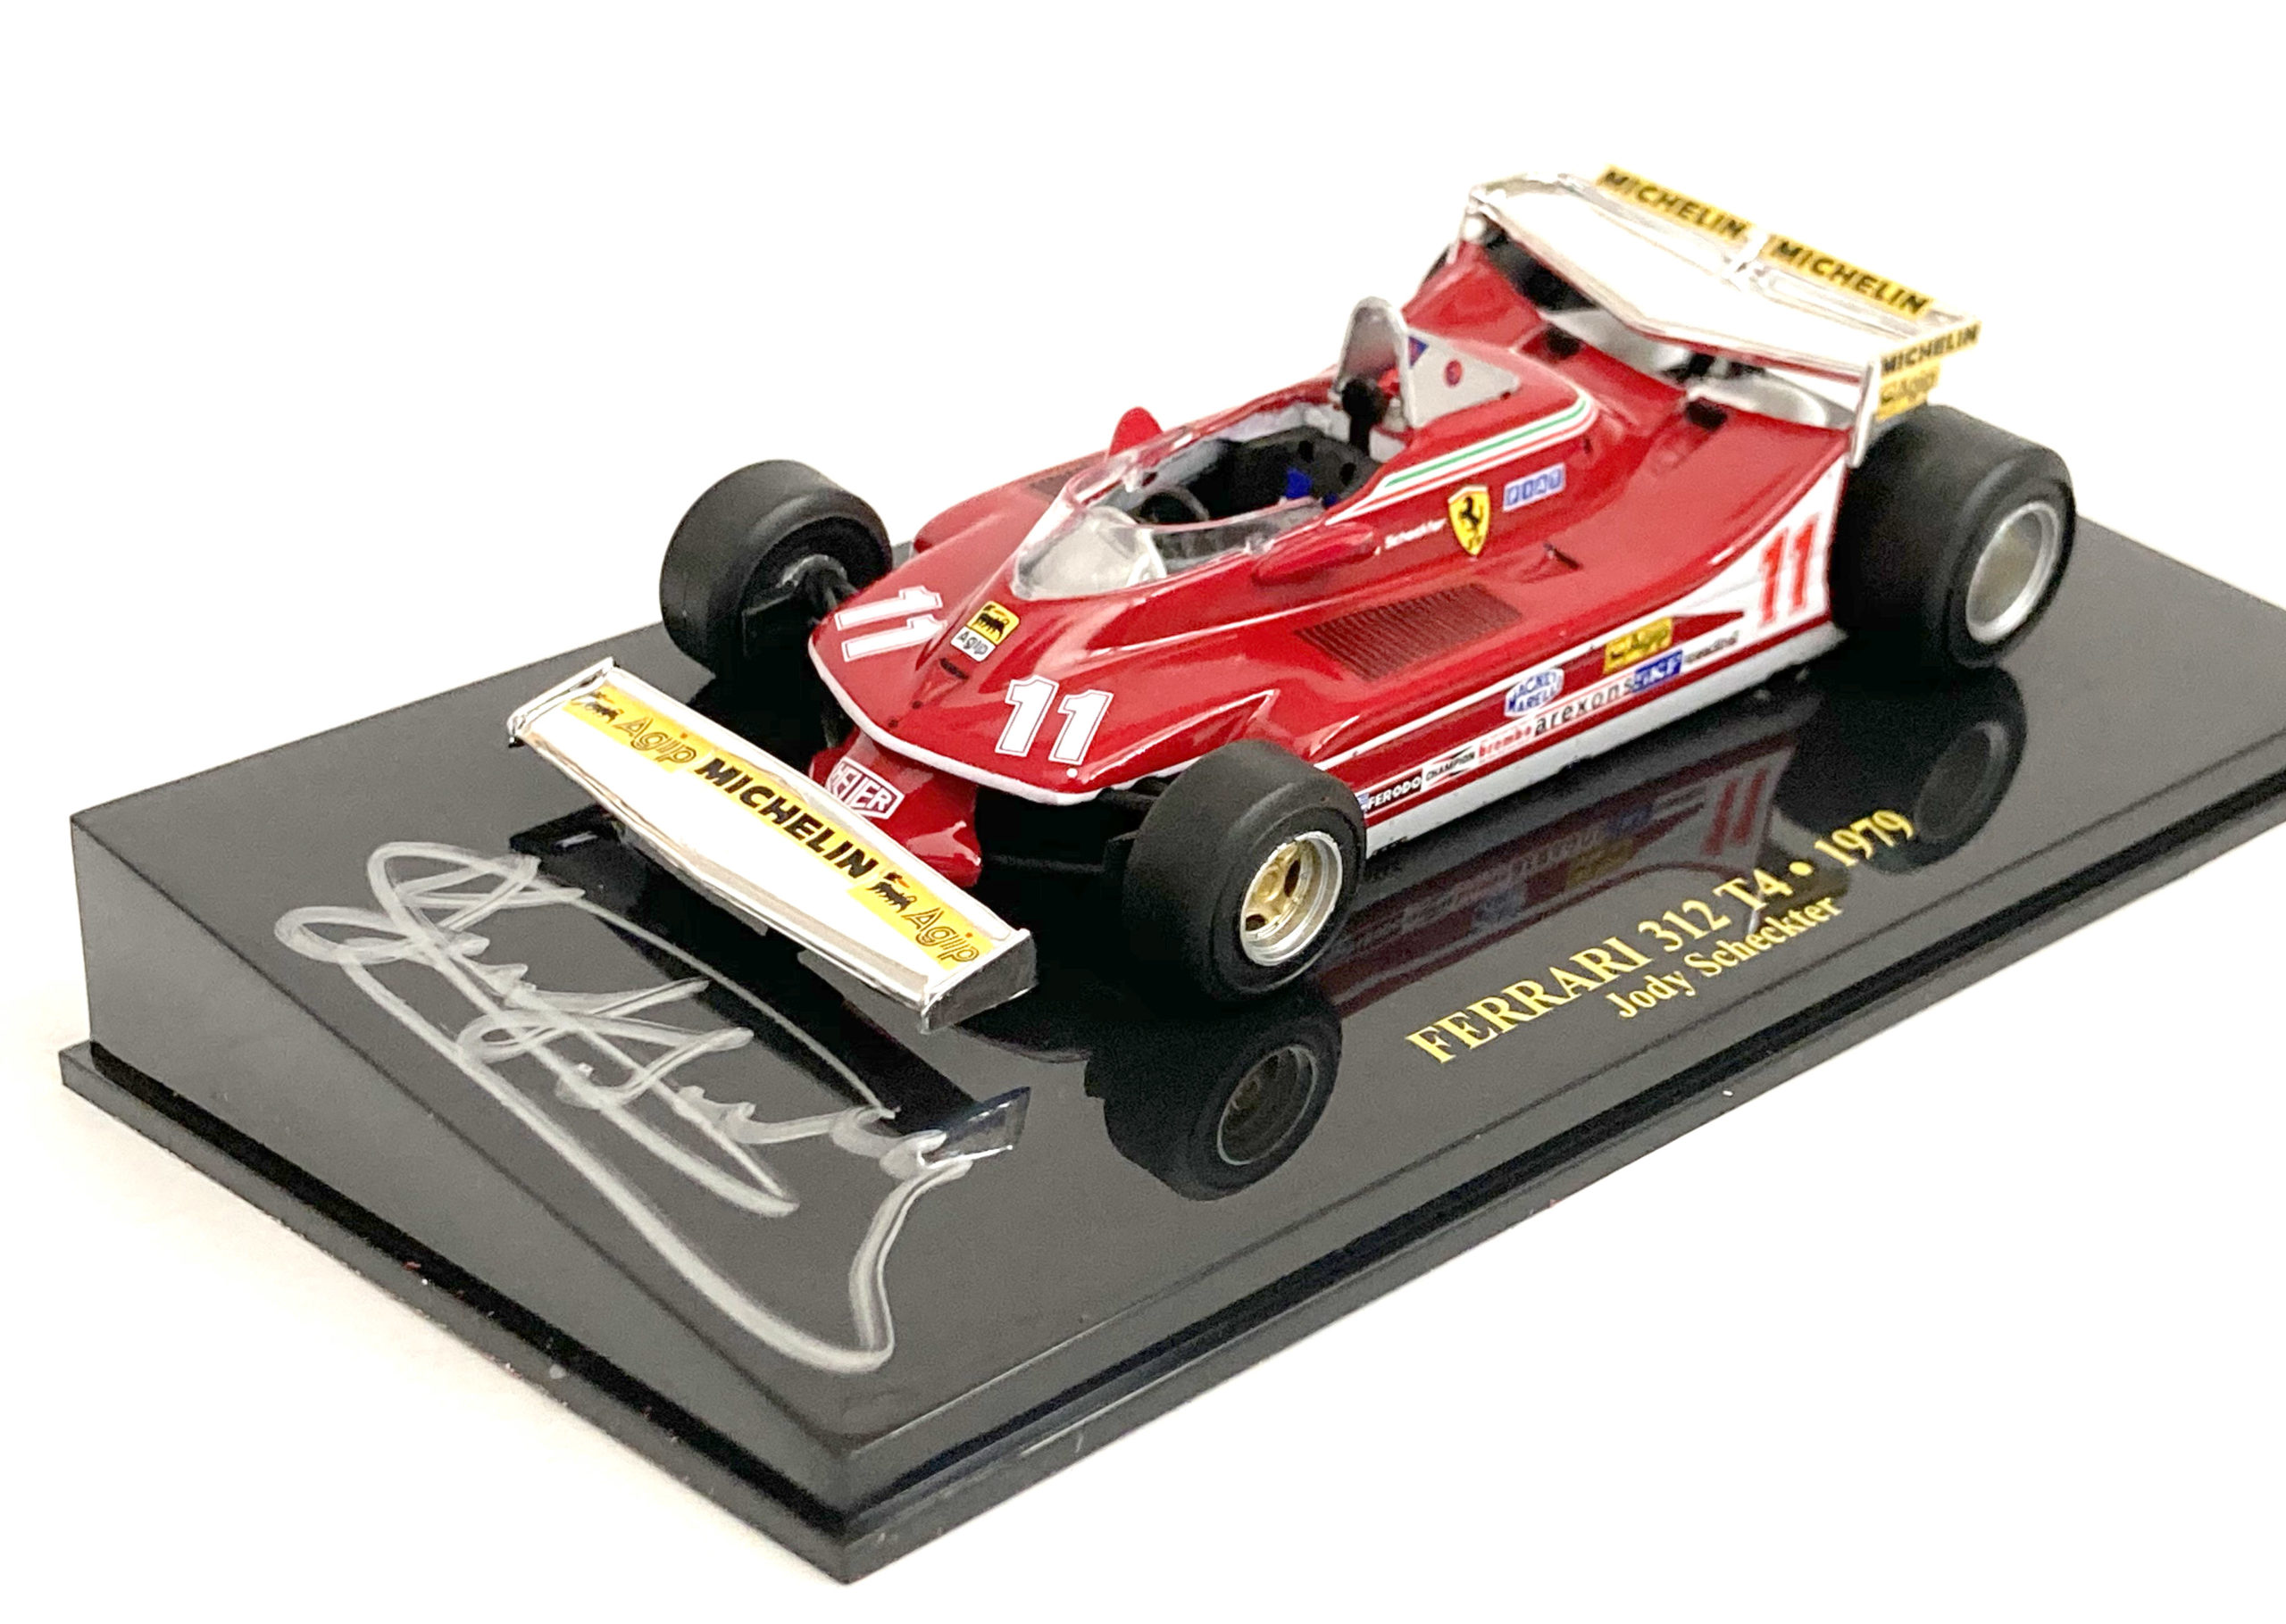 Product image for Ferrari 312T4 Monaco GP win | cased 1:43 | signed Jody Scheckter